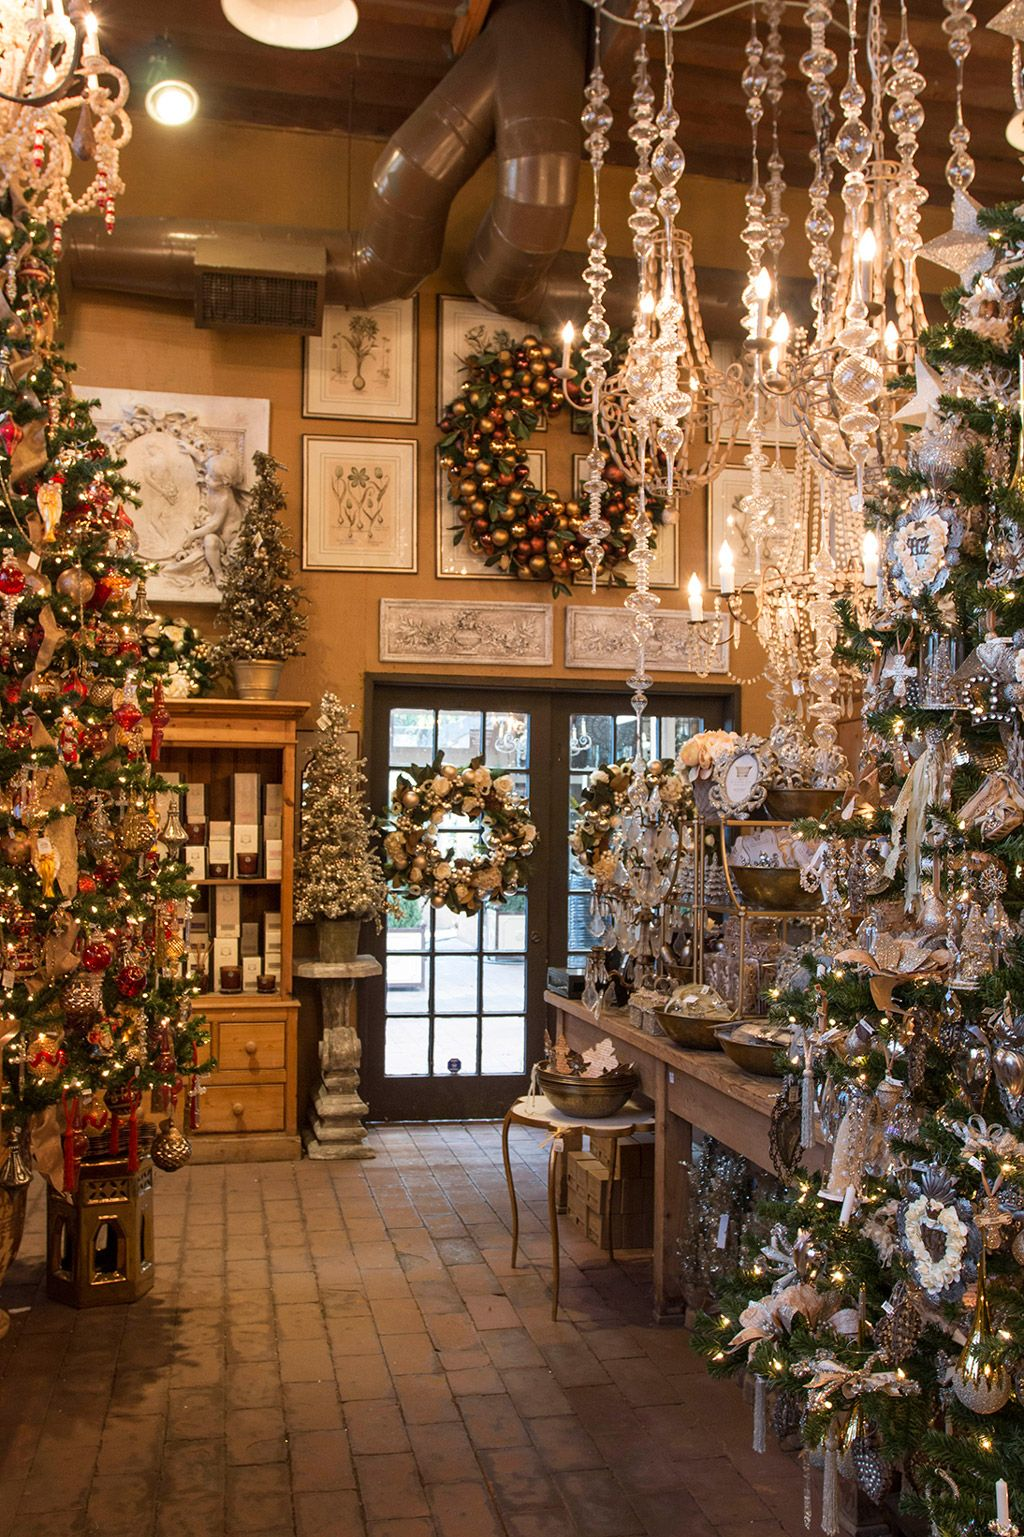 80c1be8e94bdb0b808f122438ac19963 - When Does Rogers Gardens Decorated For Christmas